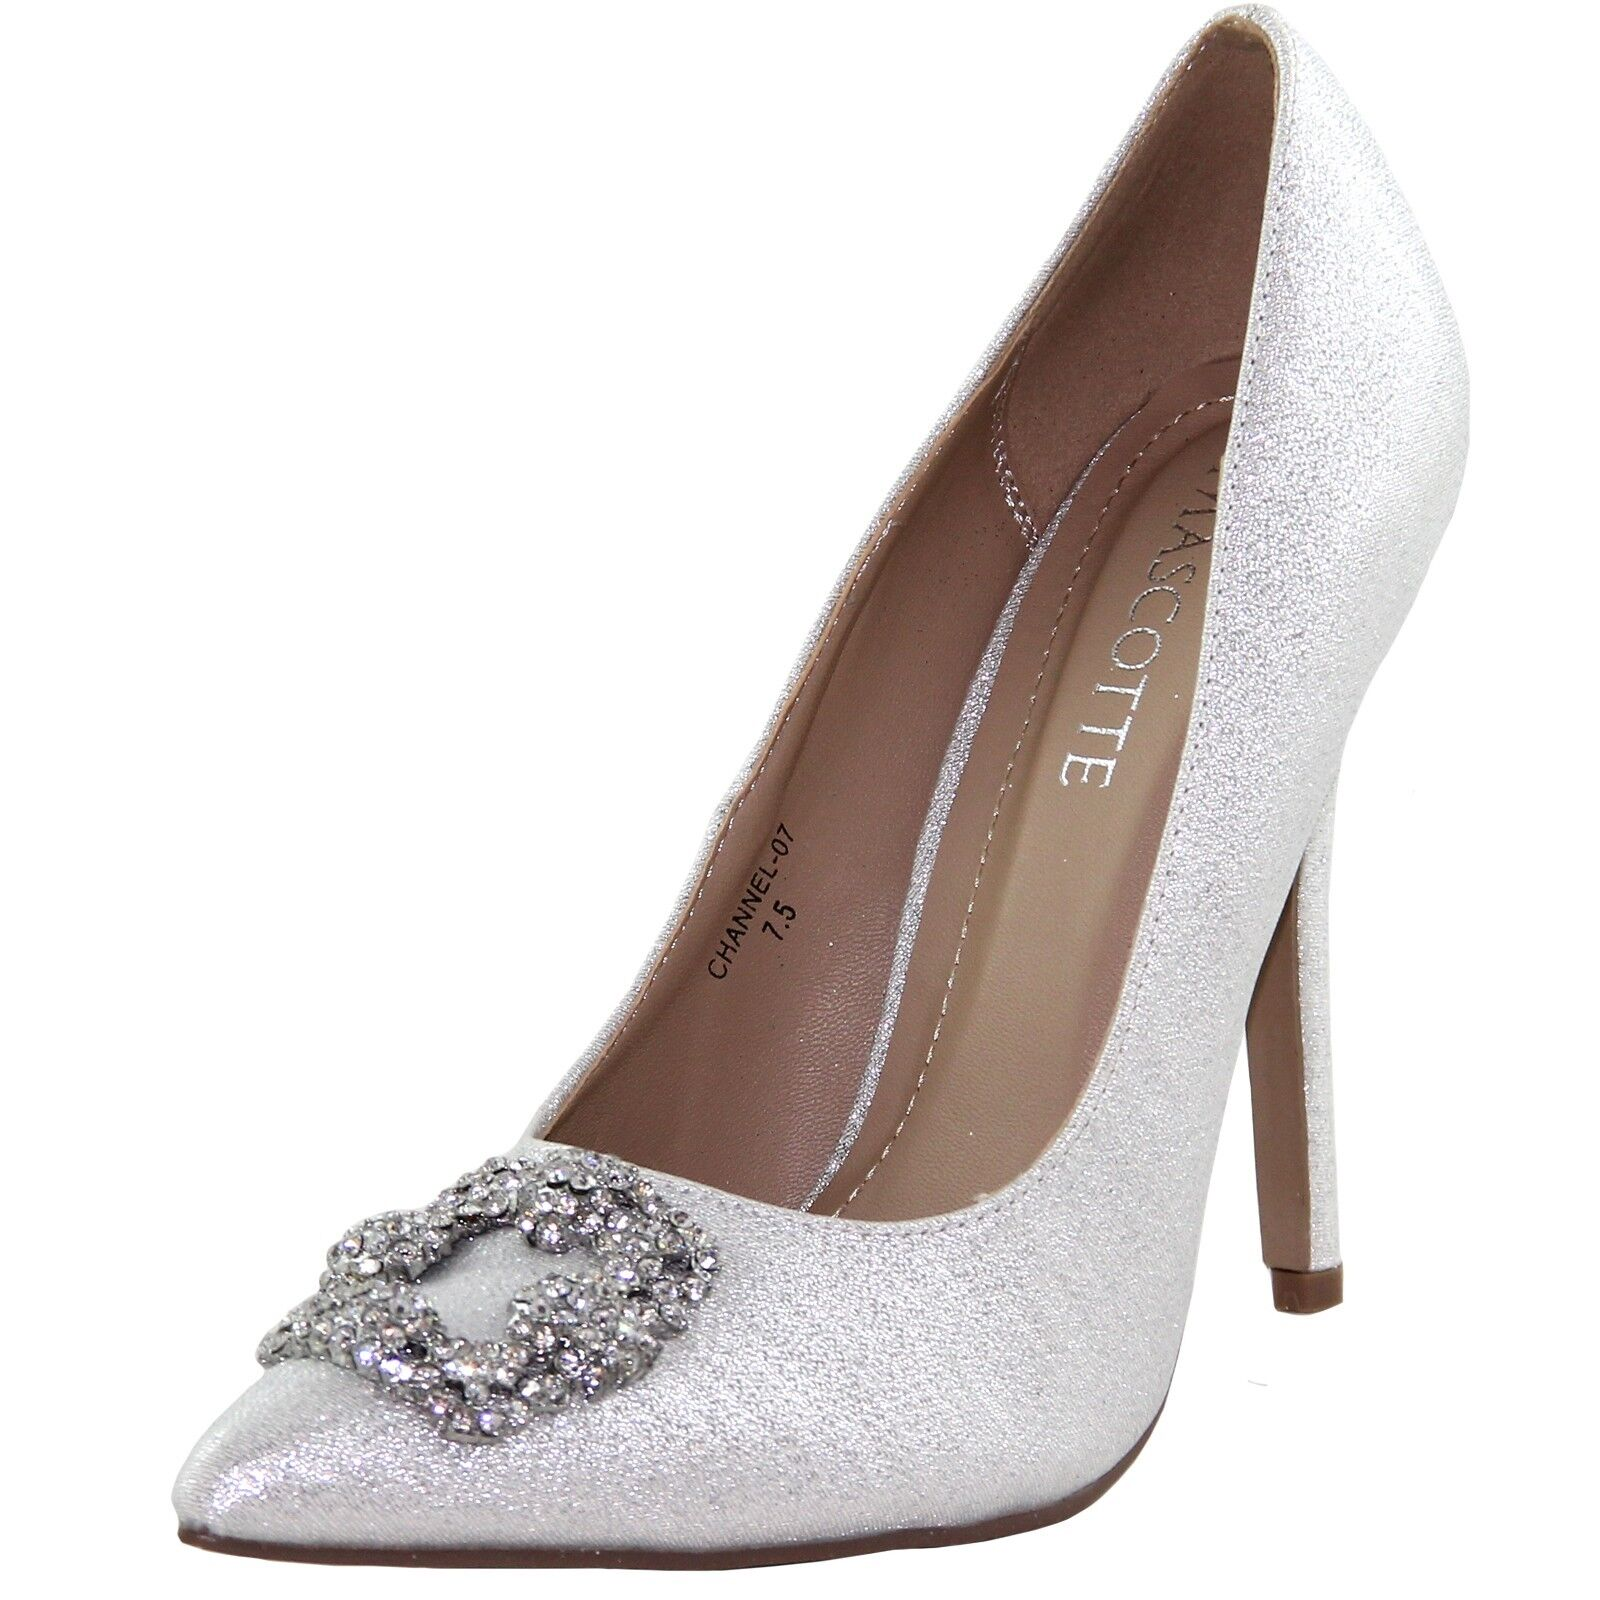 New women's shoes evening stilettos blink rhinestones prom wedding party silver